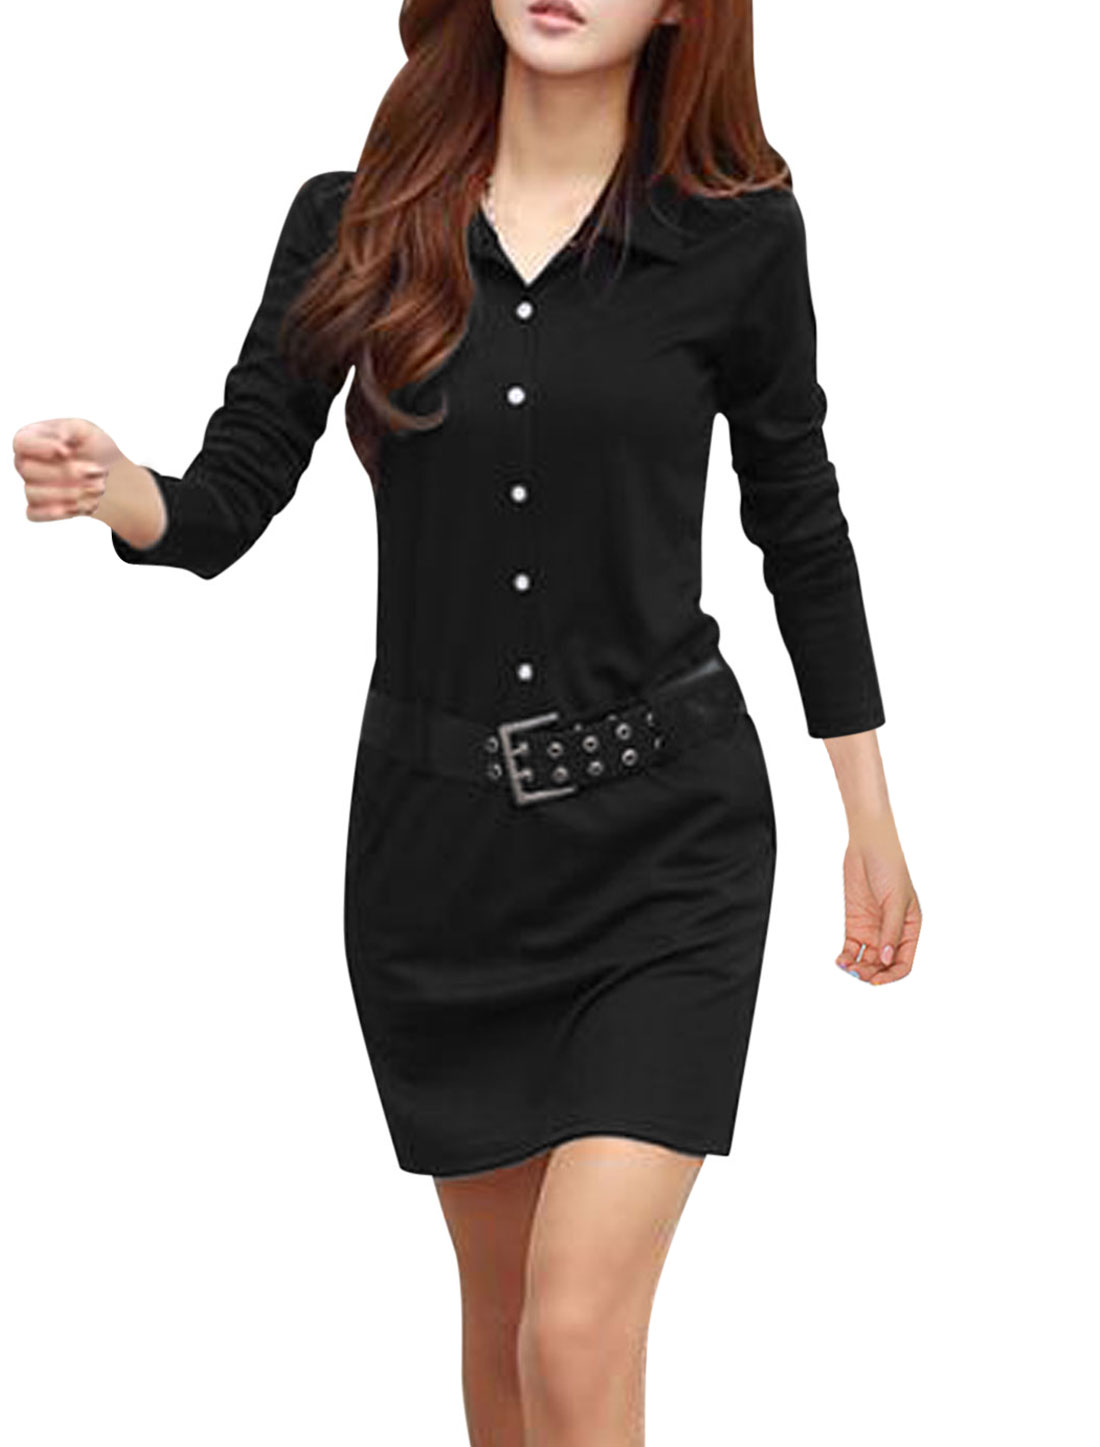 Women Button Closure Front Belt Loop Short Dress w Belt Black S